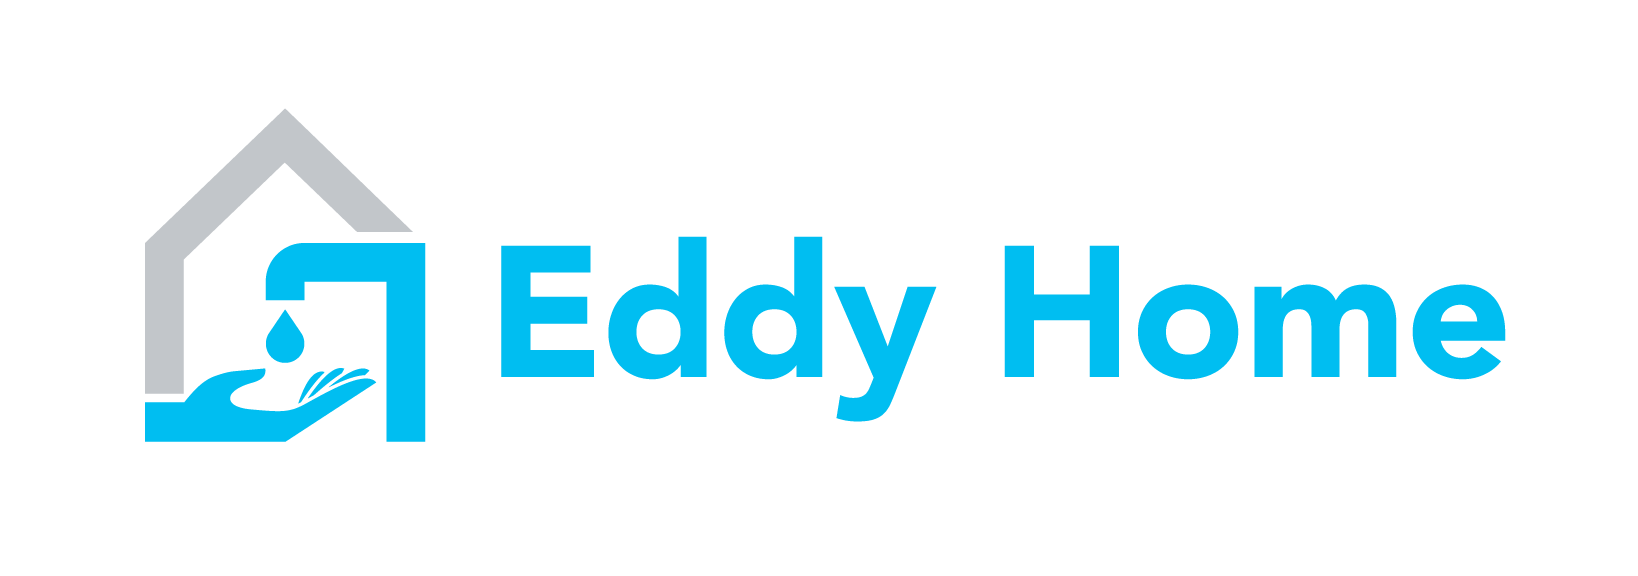 Eddy Home's H2O Sensor enhances its Intelligent Wa